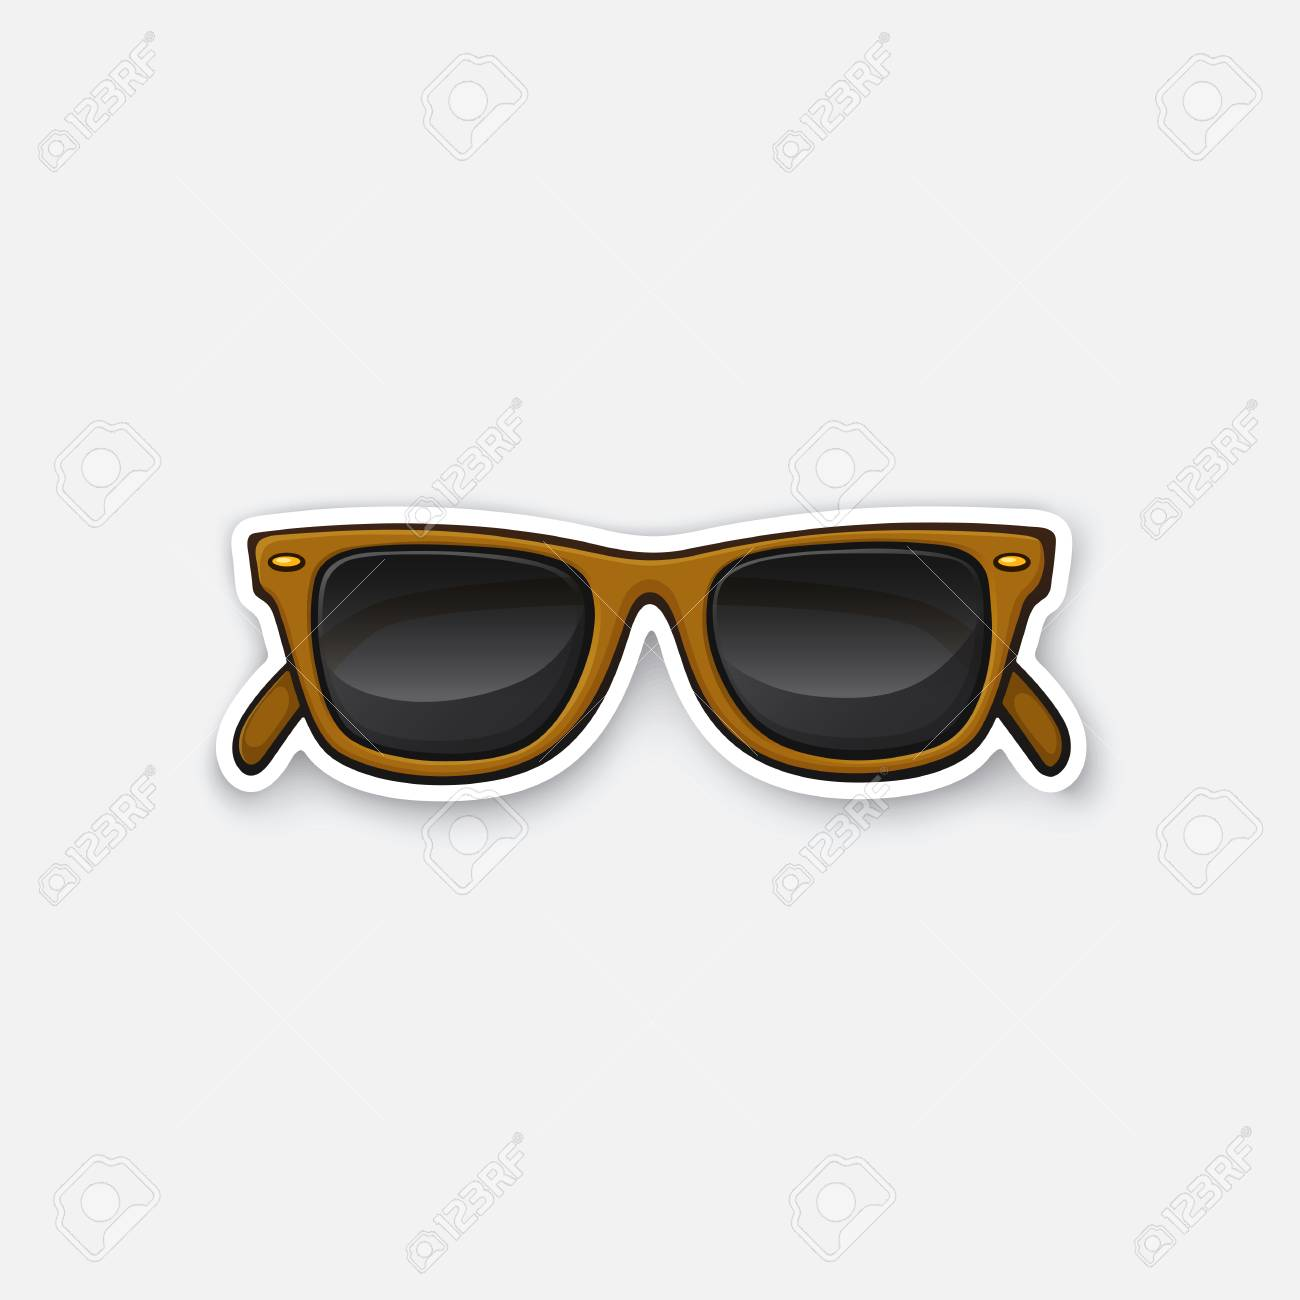 e5b5ea8151 Retro sunglasses horn-rimmed glasses. Sticker in cartoon style with  contour. Decoration for greeting cards